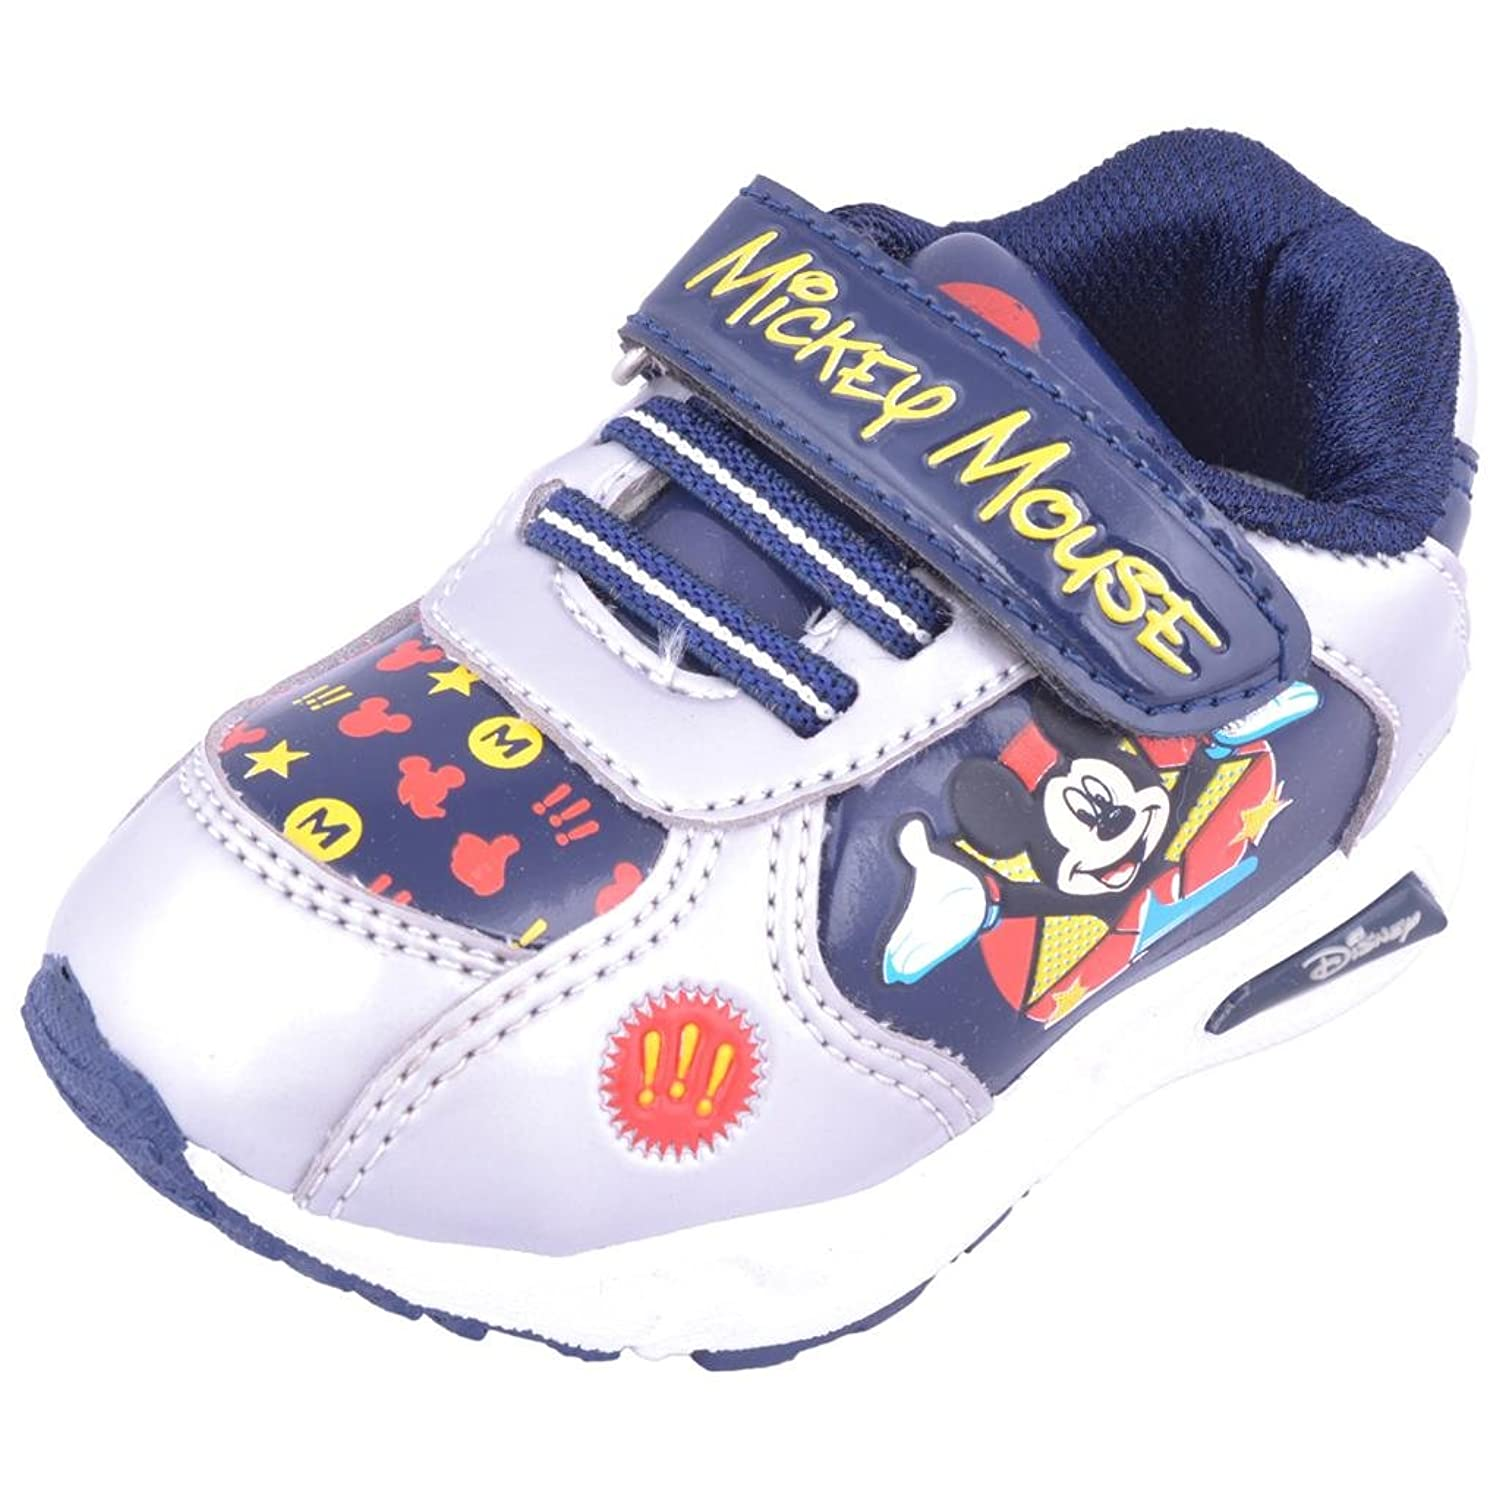 Disney Kids Uni Mickey Mouse Navy Blue Silver Shoe Size 10